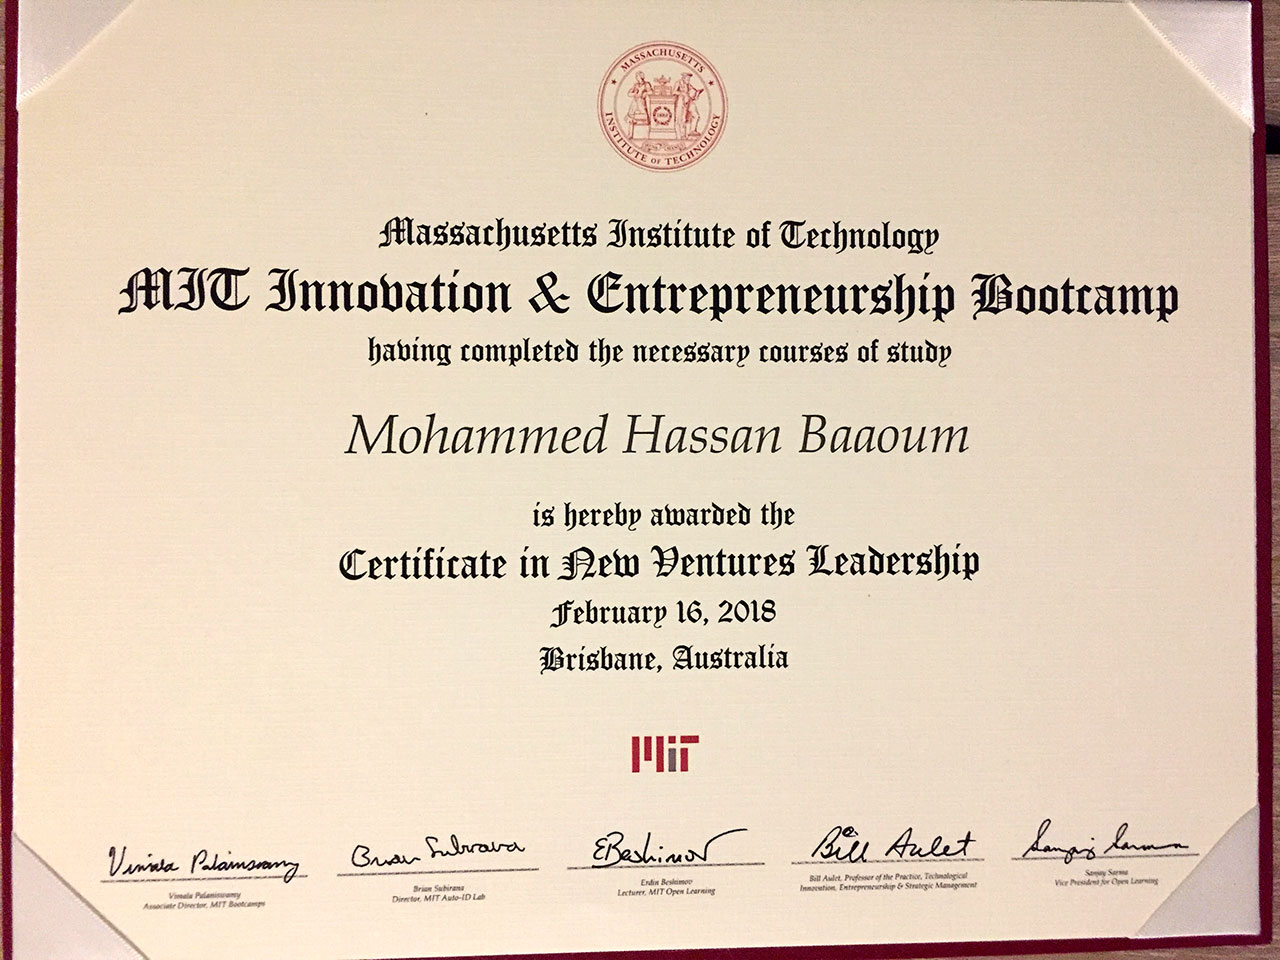 Mohammed Baaoum's first place certificate from MIT Innovation & Entrepreneurship Bootcamp